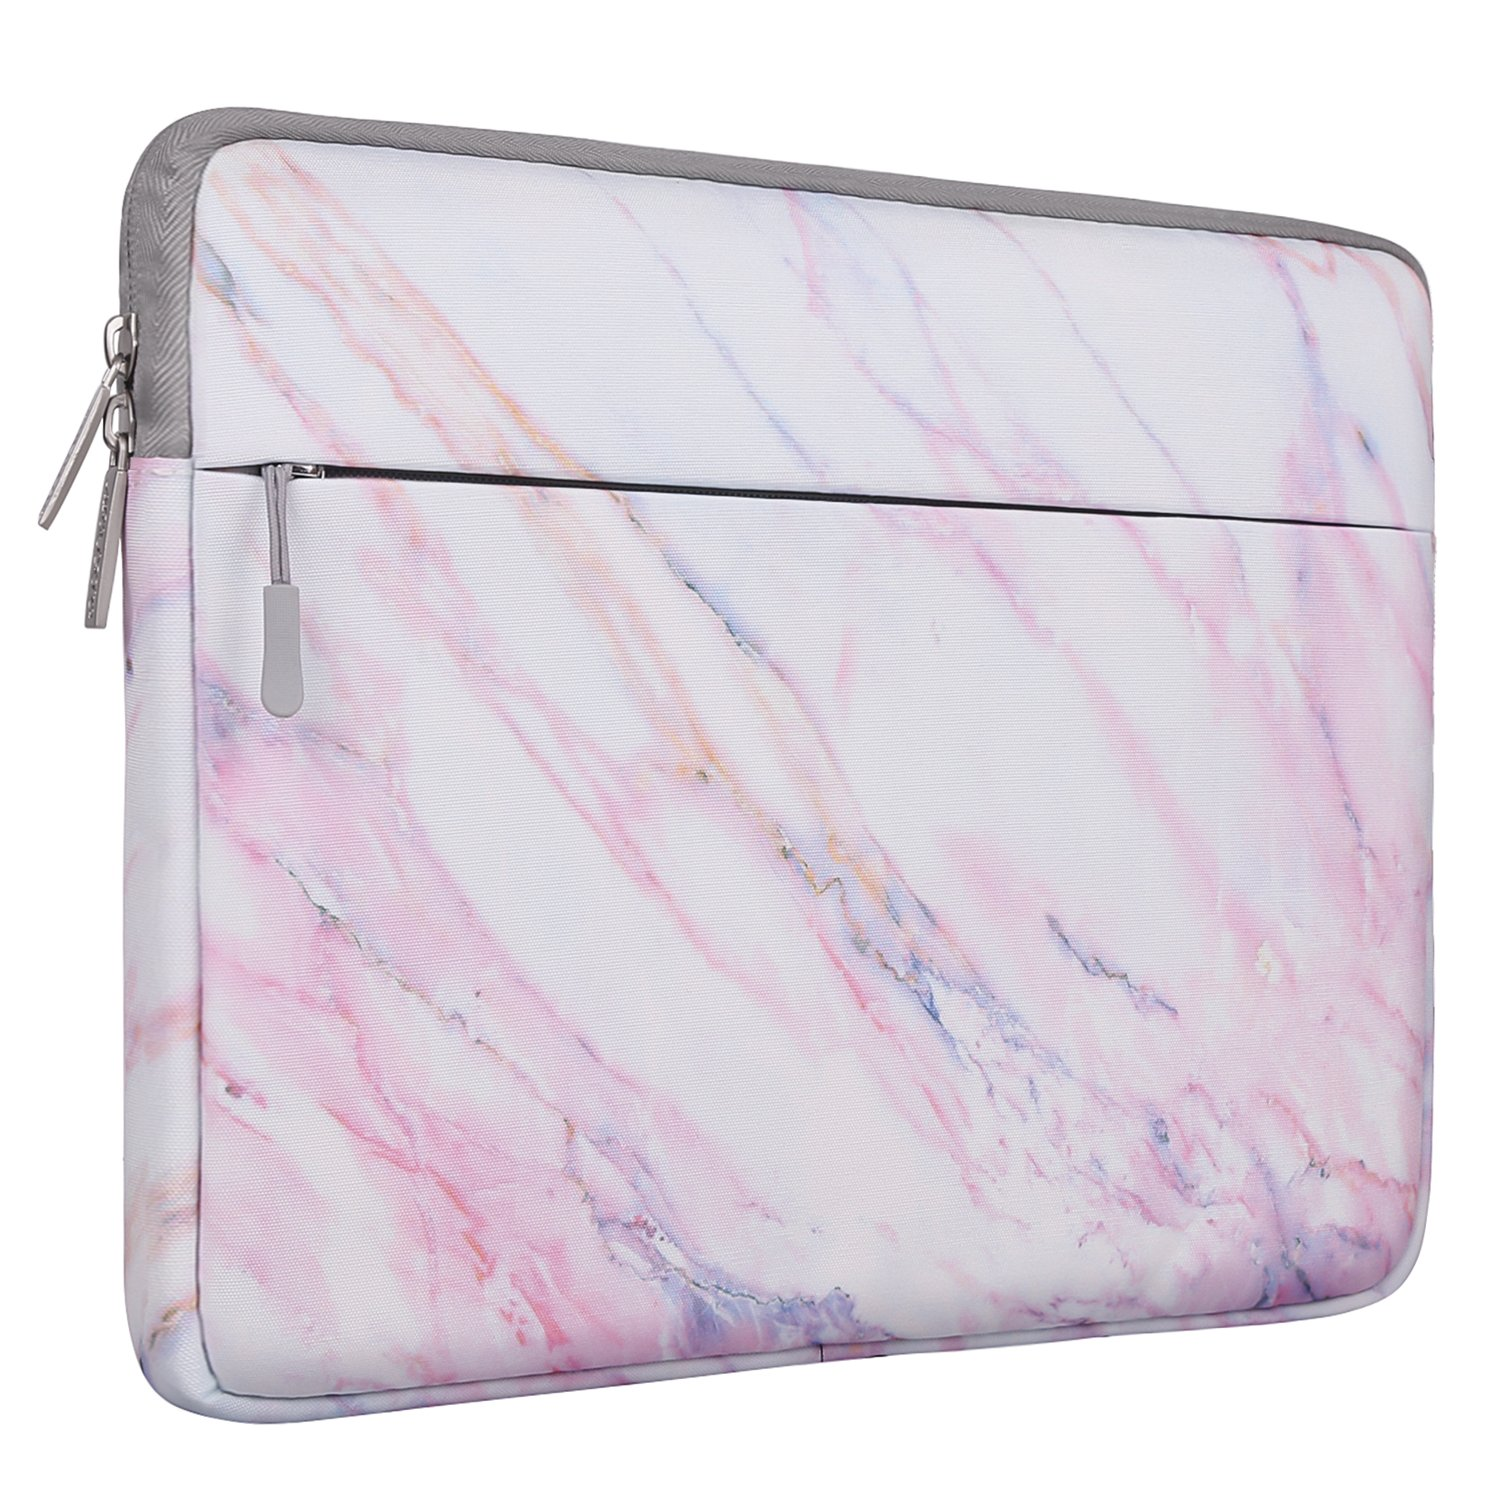 MOSISO Laptop Sleeve Bag Compatible 15-15.6 Inch MacBook Pro, Notebook Computer, Canvas Fabric Protective Carrying Case Cover, Pink Marble Pattern